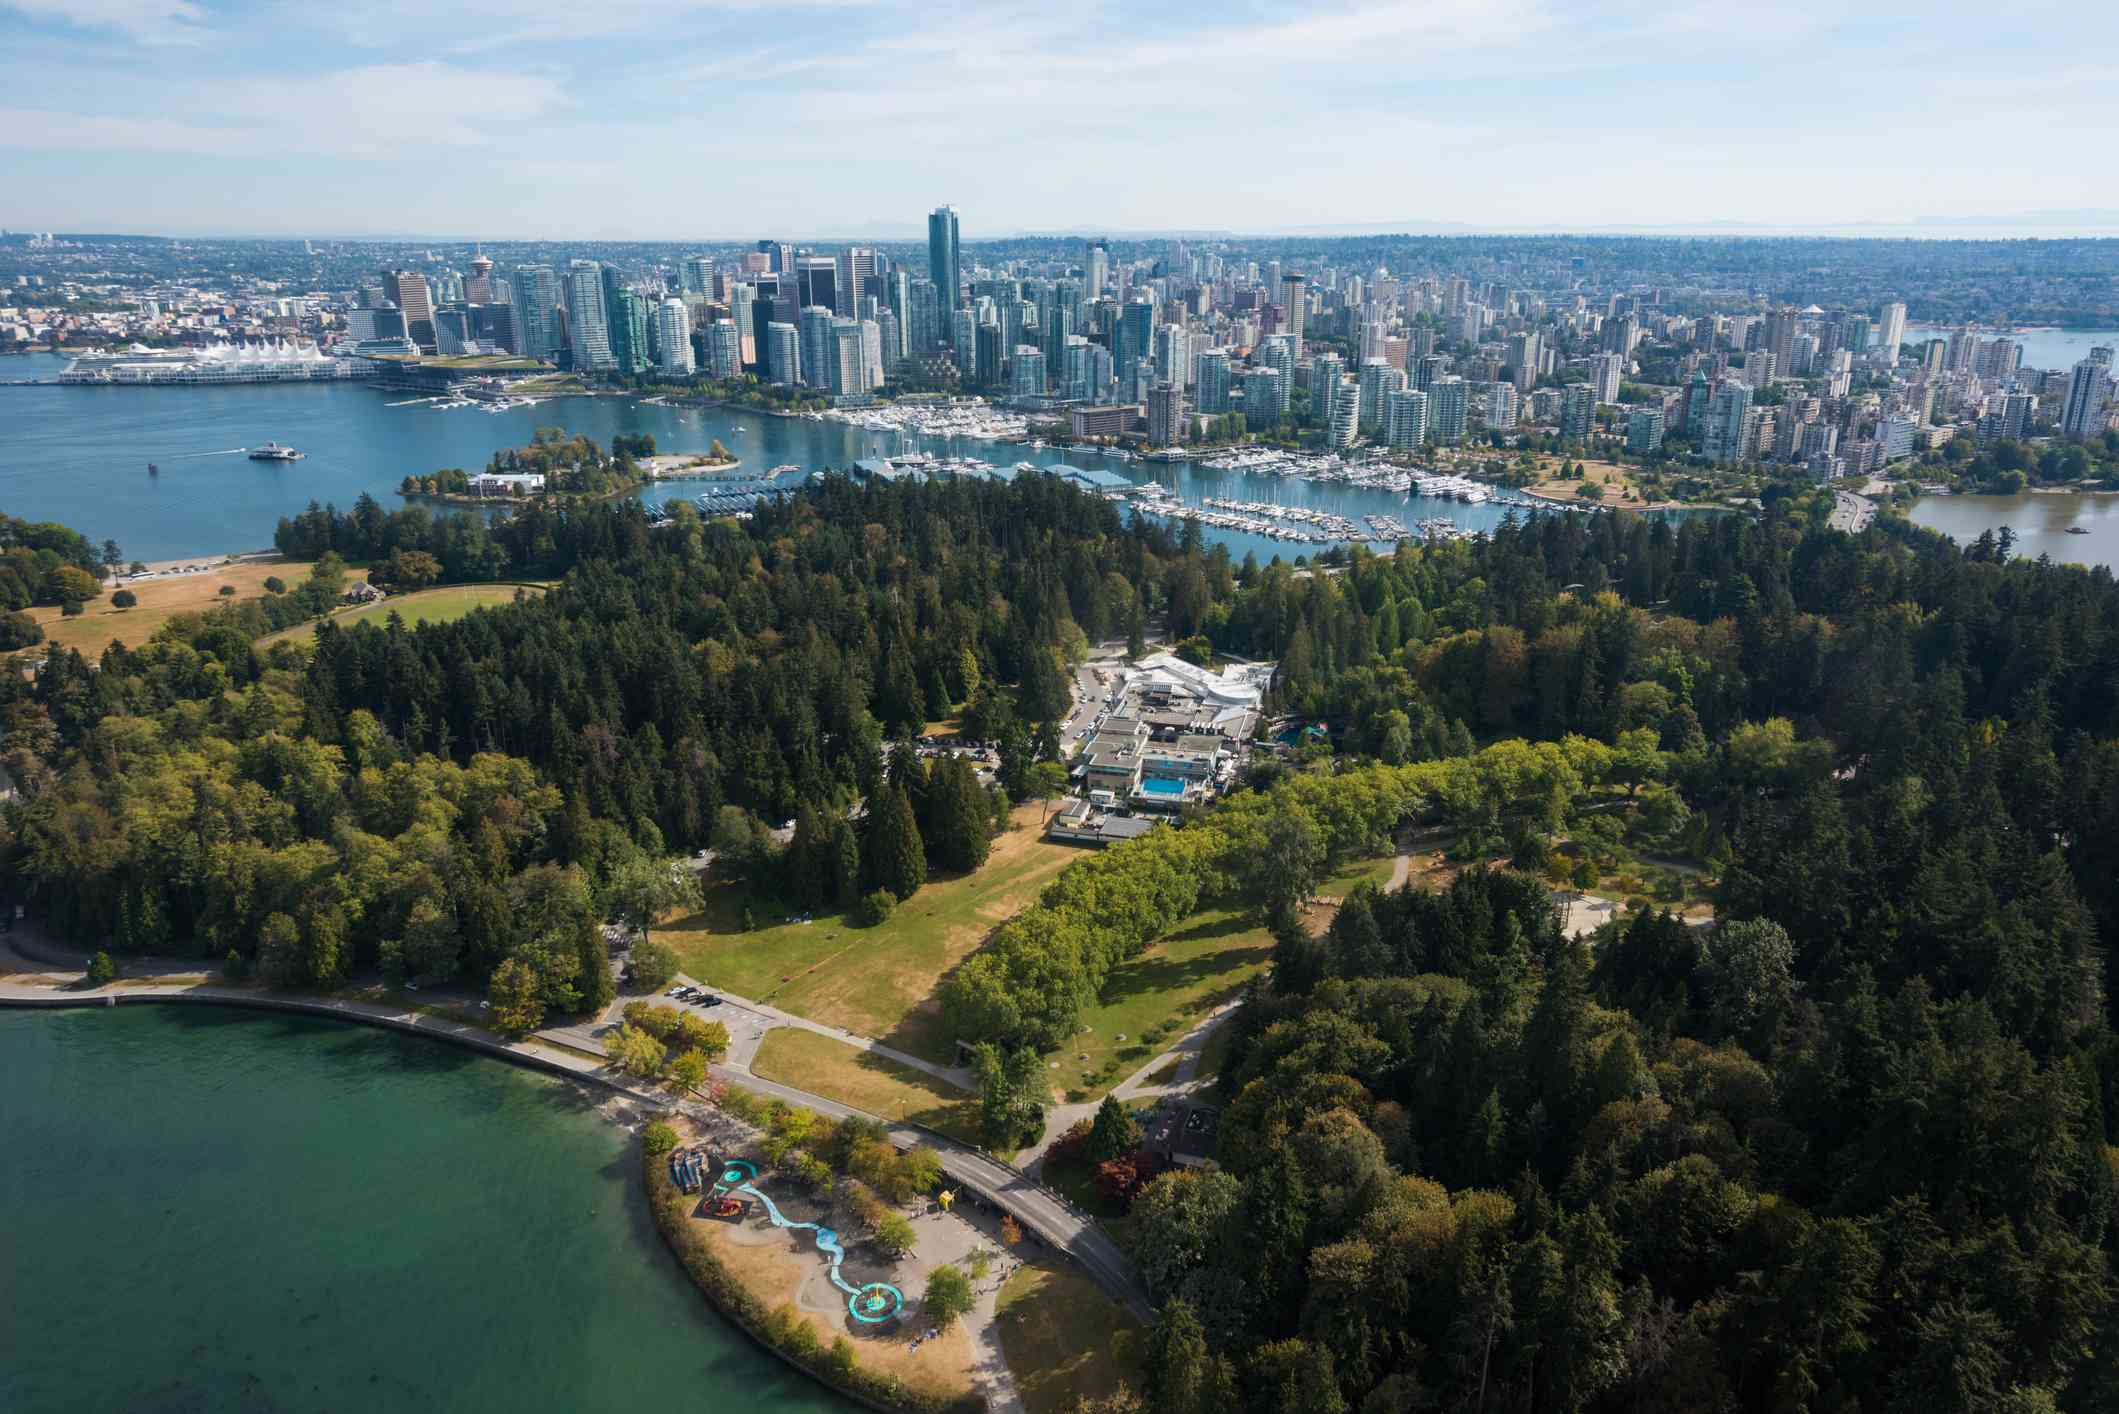 Aerial view of Stanley Park covered with lush green trees and surrounded by water with downtown Vancouver in the background